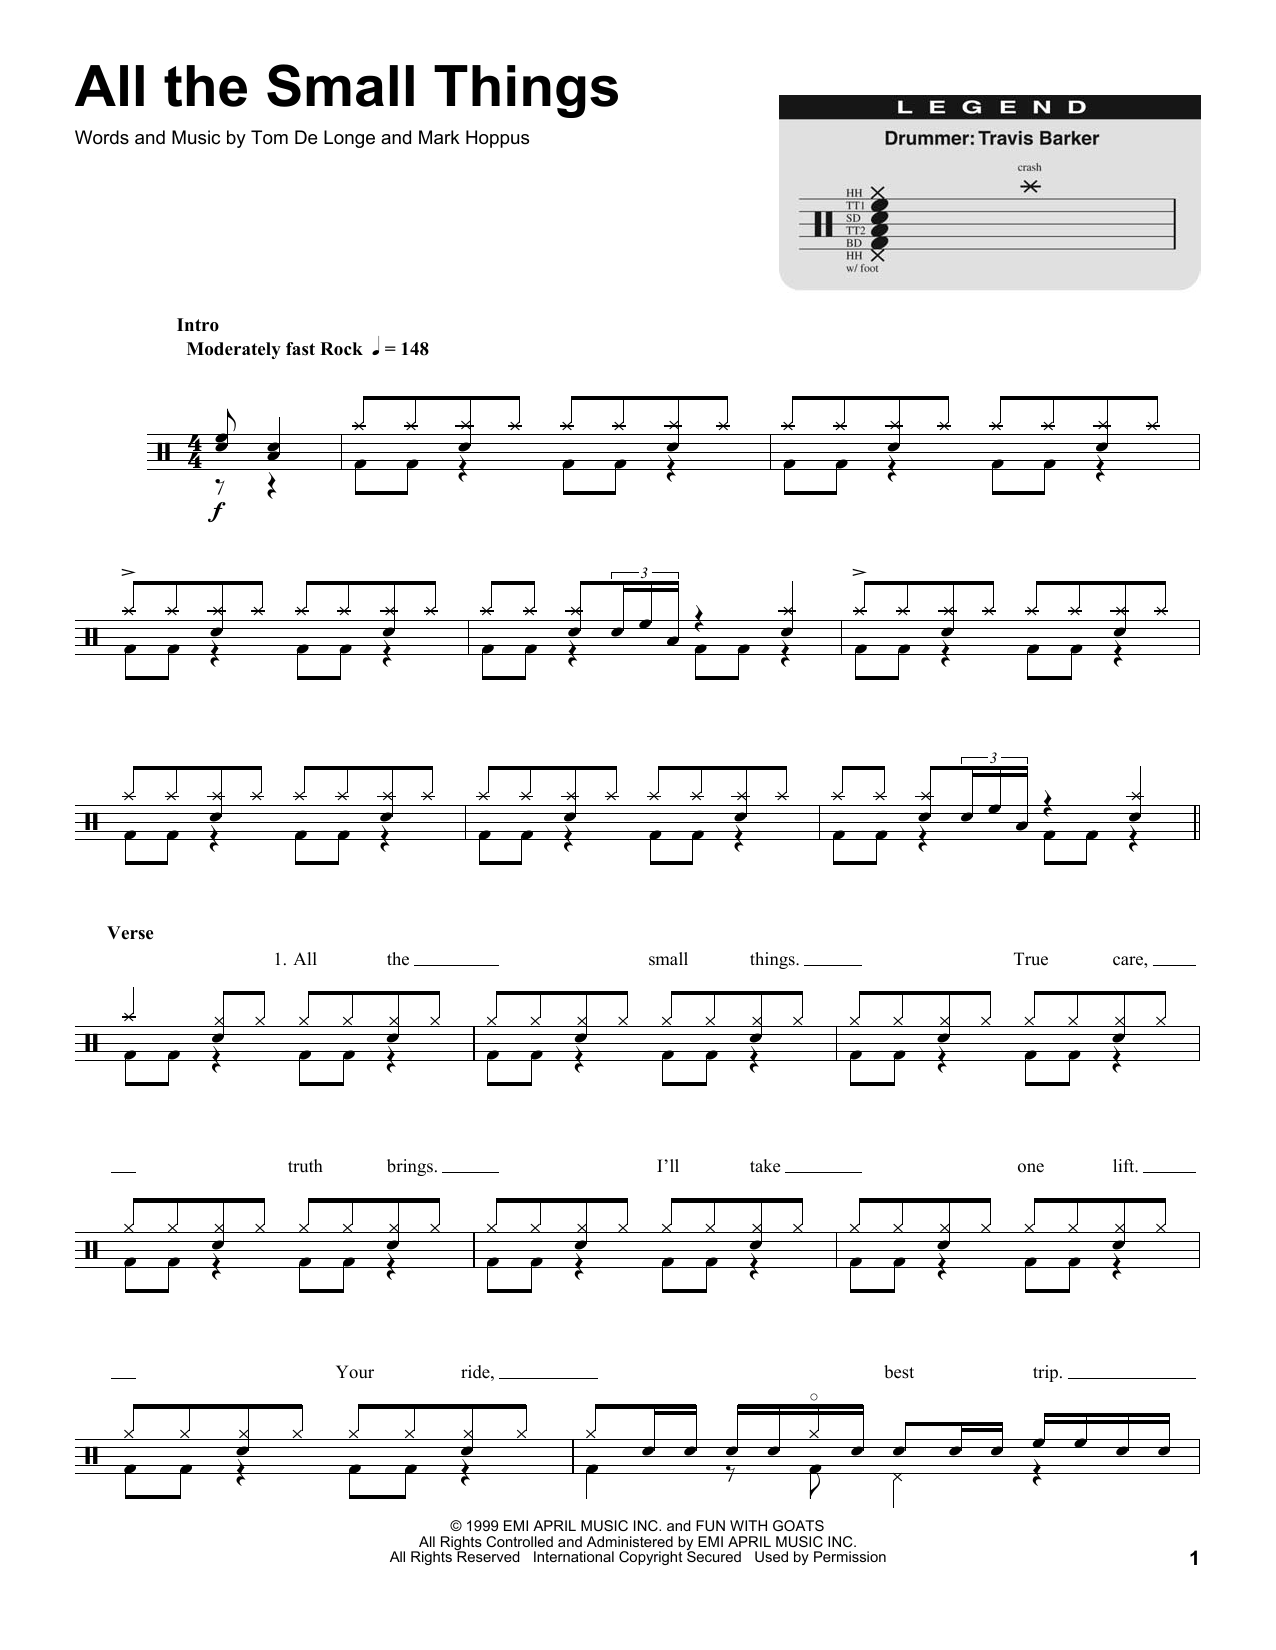 All The Small Things Sheet Music Notes Blink 182 Chords Download